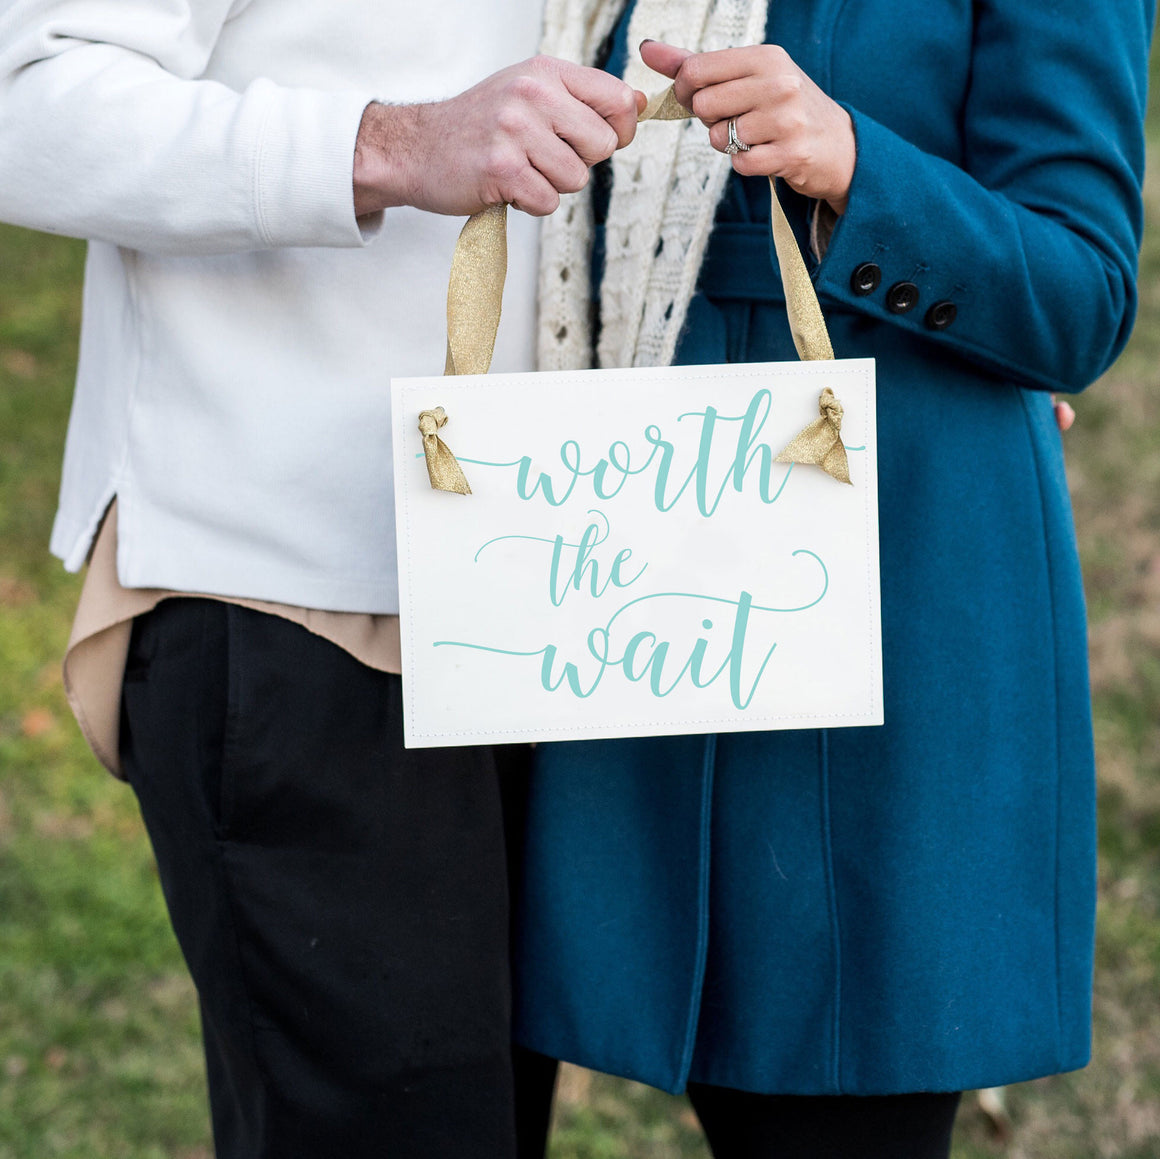 Worth The Wait sign for new baby photo by Lindsey Hinkley